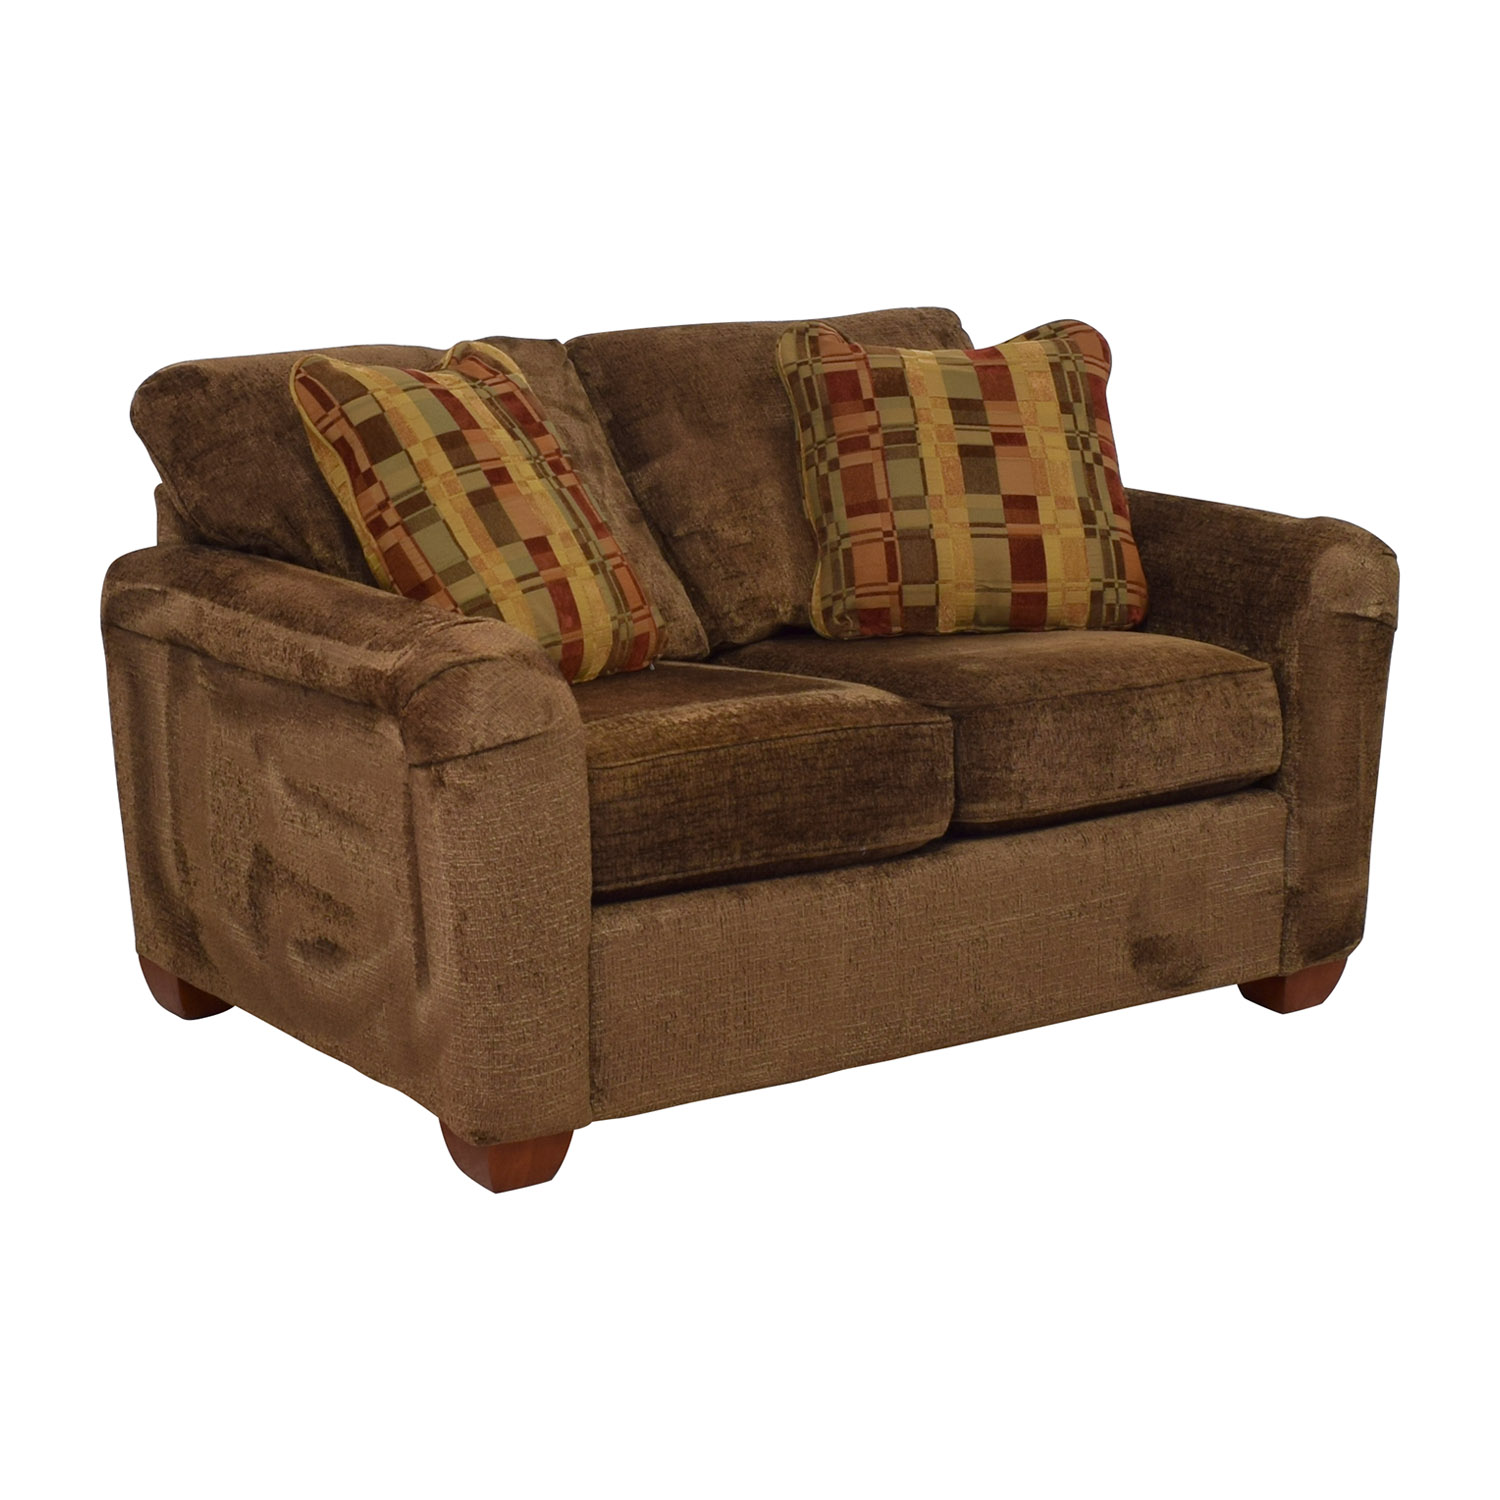 buy La-Z-Boy Sofa La-Z-Boy